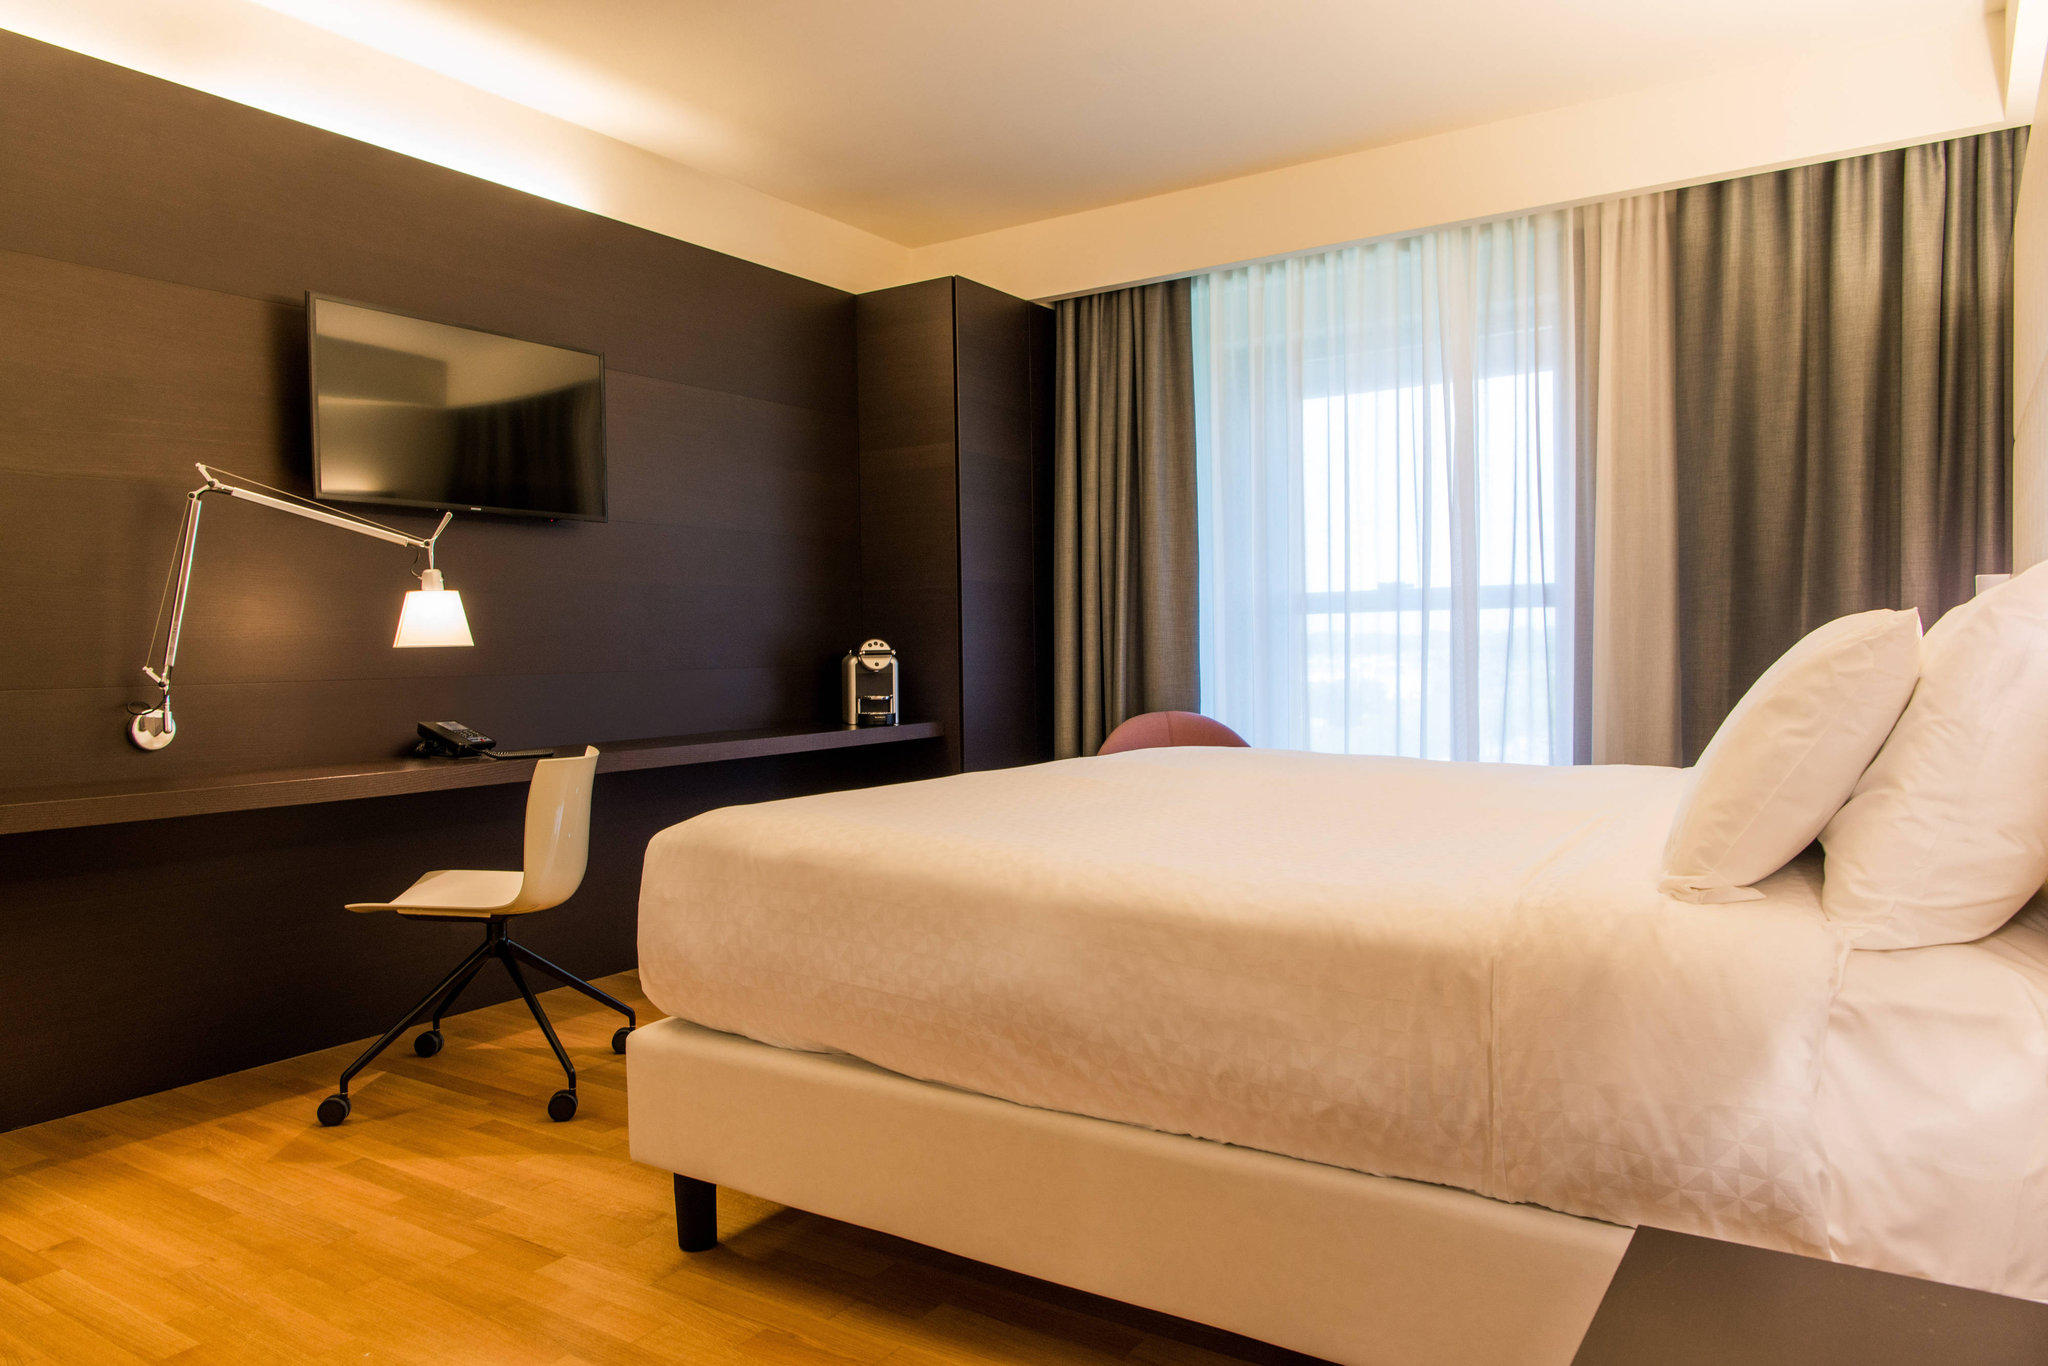 Images Four Points by Sheraton Venice Mestre